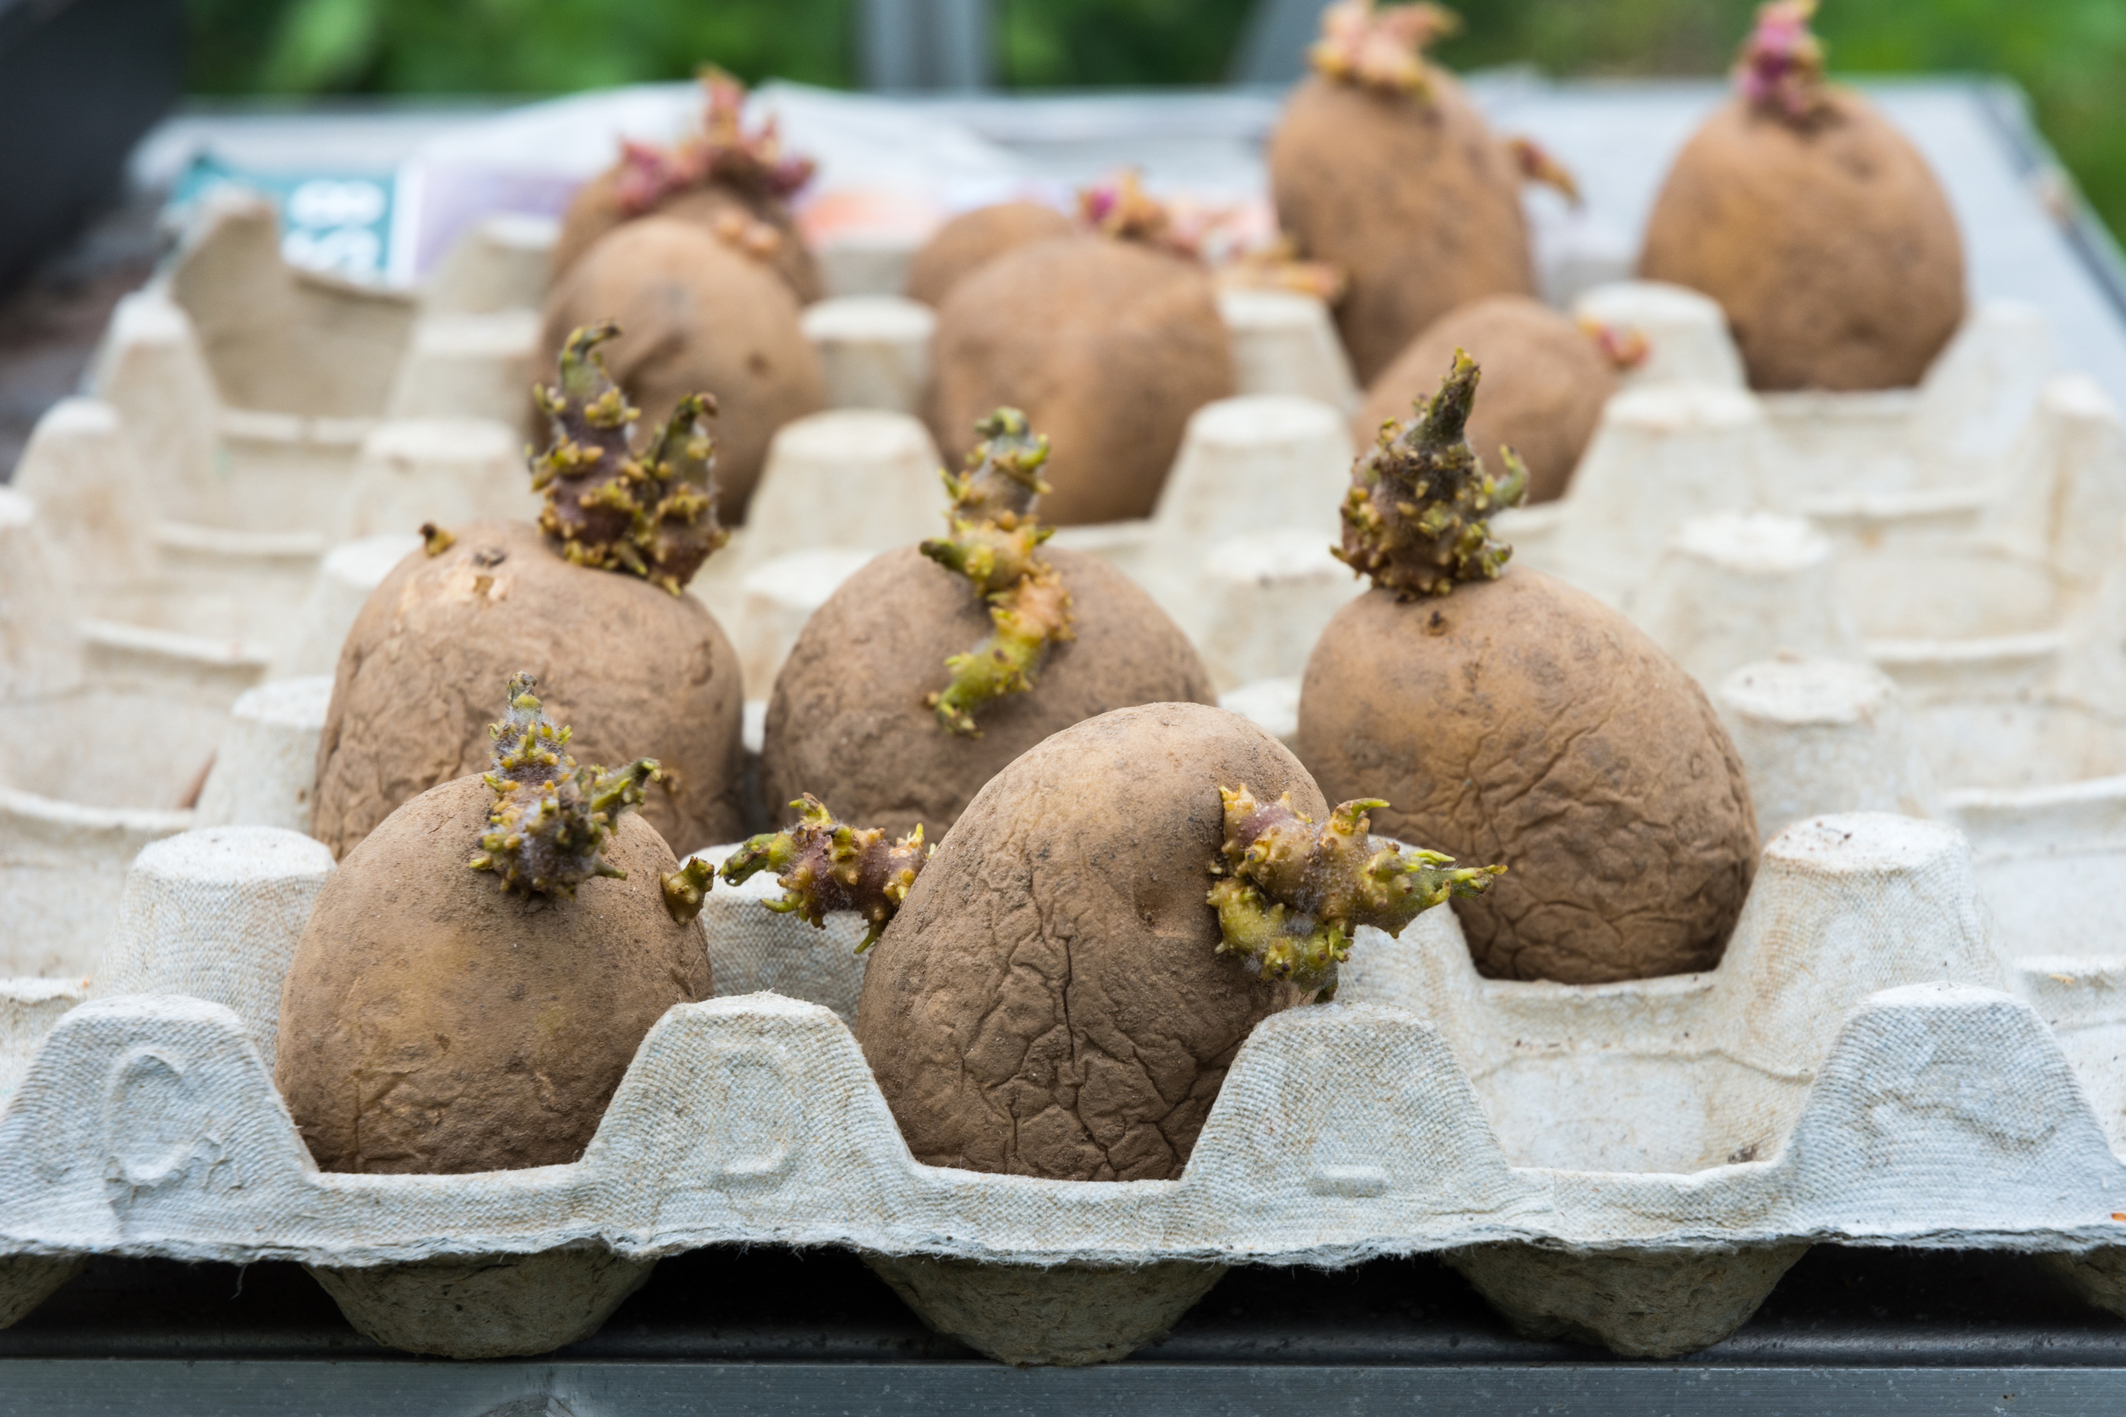 How To Grow Your Own Potatoes In 7 Simple Steps